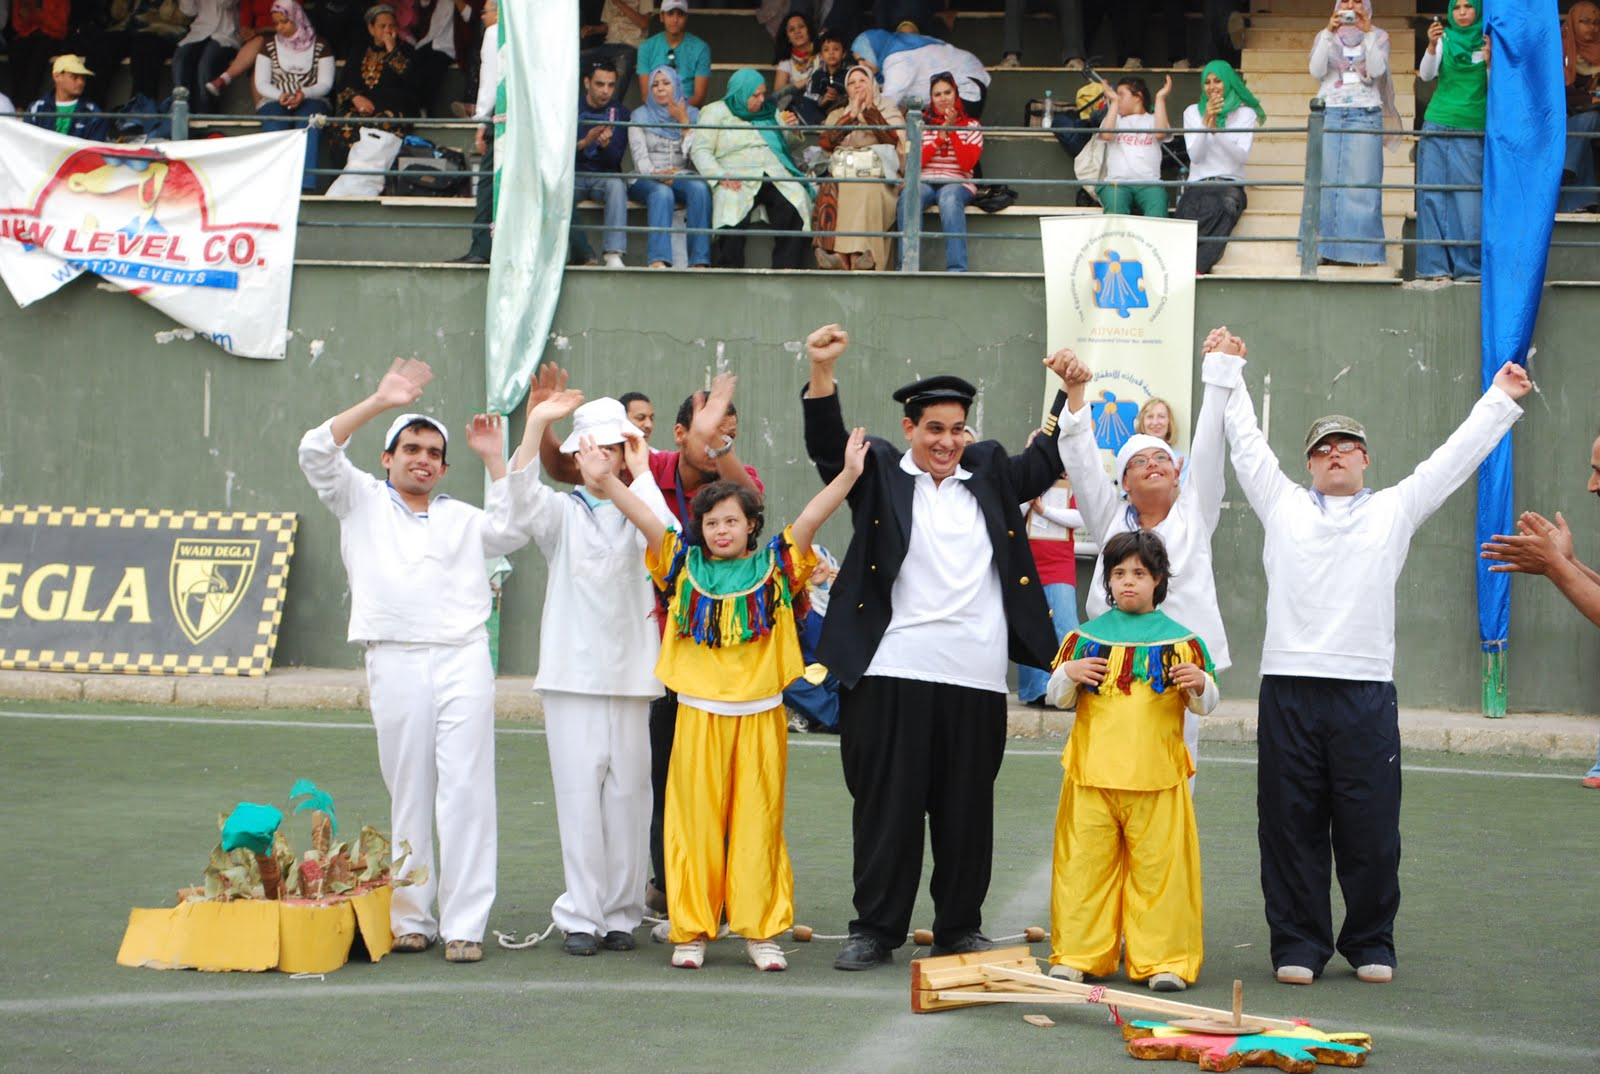 A Sport's Gala hosted by the Wadi Degla Sports Club in Al-Maadi for Autistic patients.